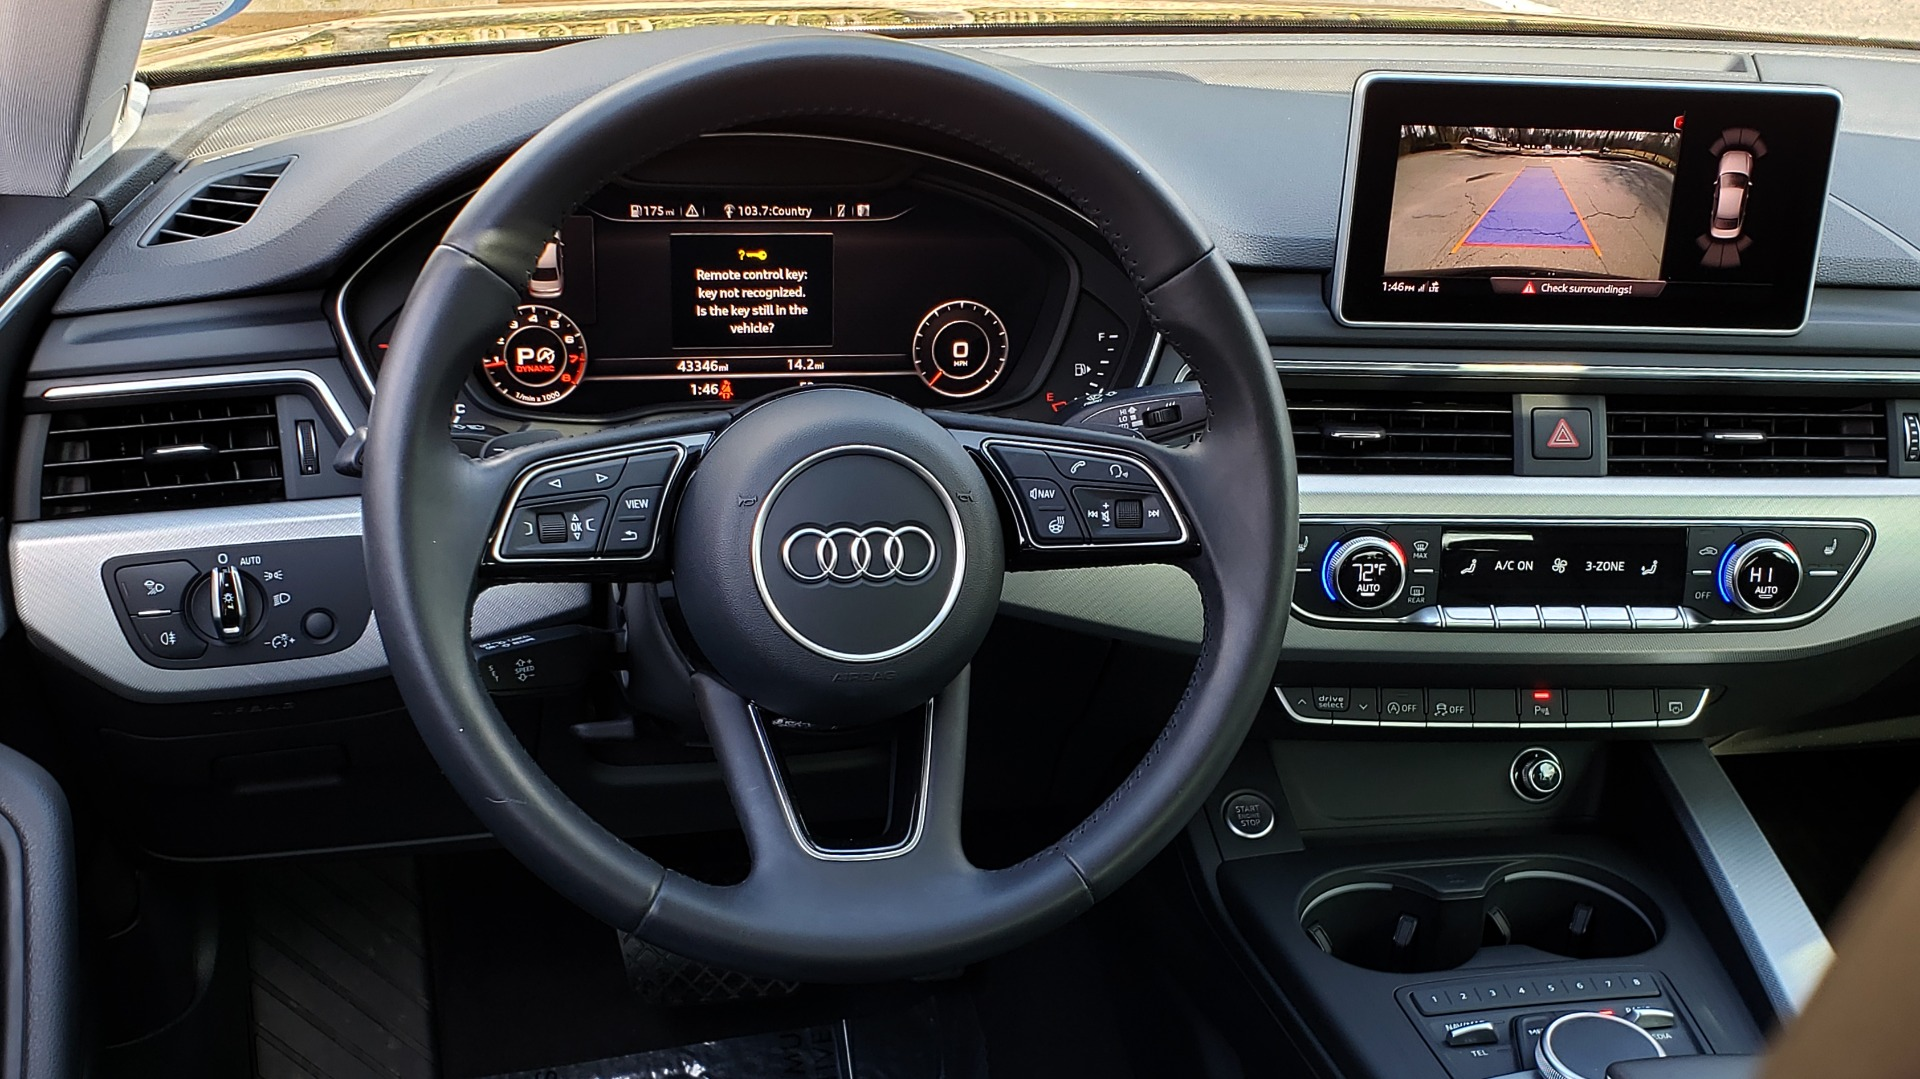 Used 2017 Audi A4 PREMIUM PLUS 2.0T / TECH / NAV / CLD WTHR / SUNROOF / REARVIEW for sale Sold at Formula Imports in Charlotte NC 28227 34